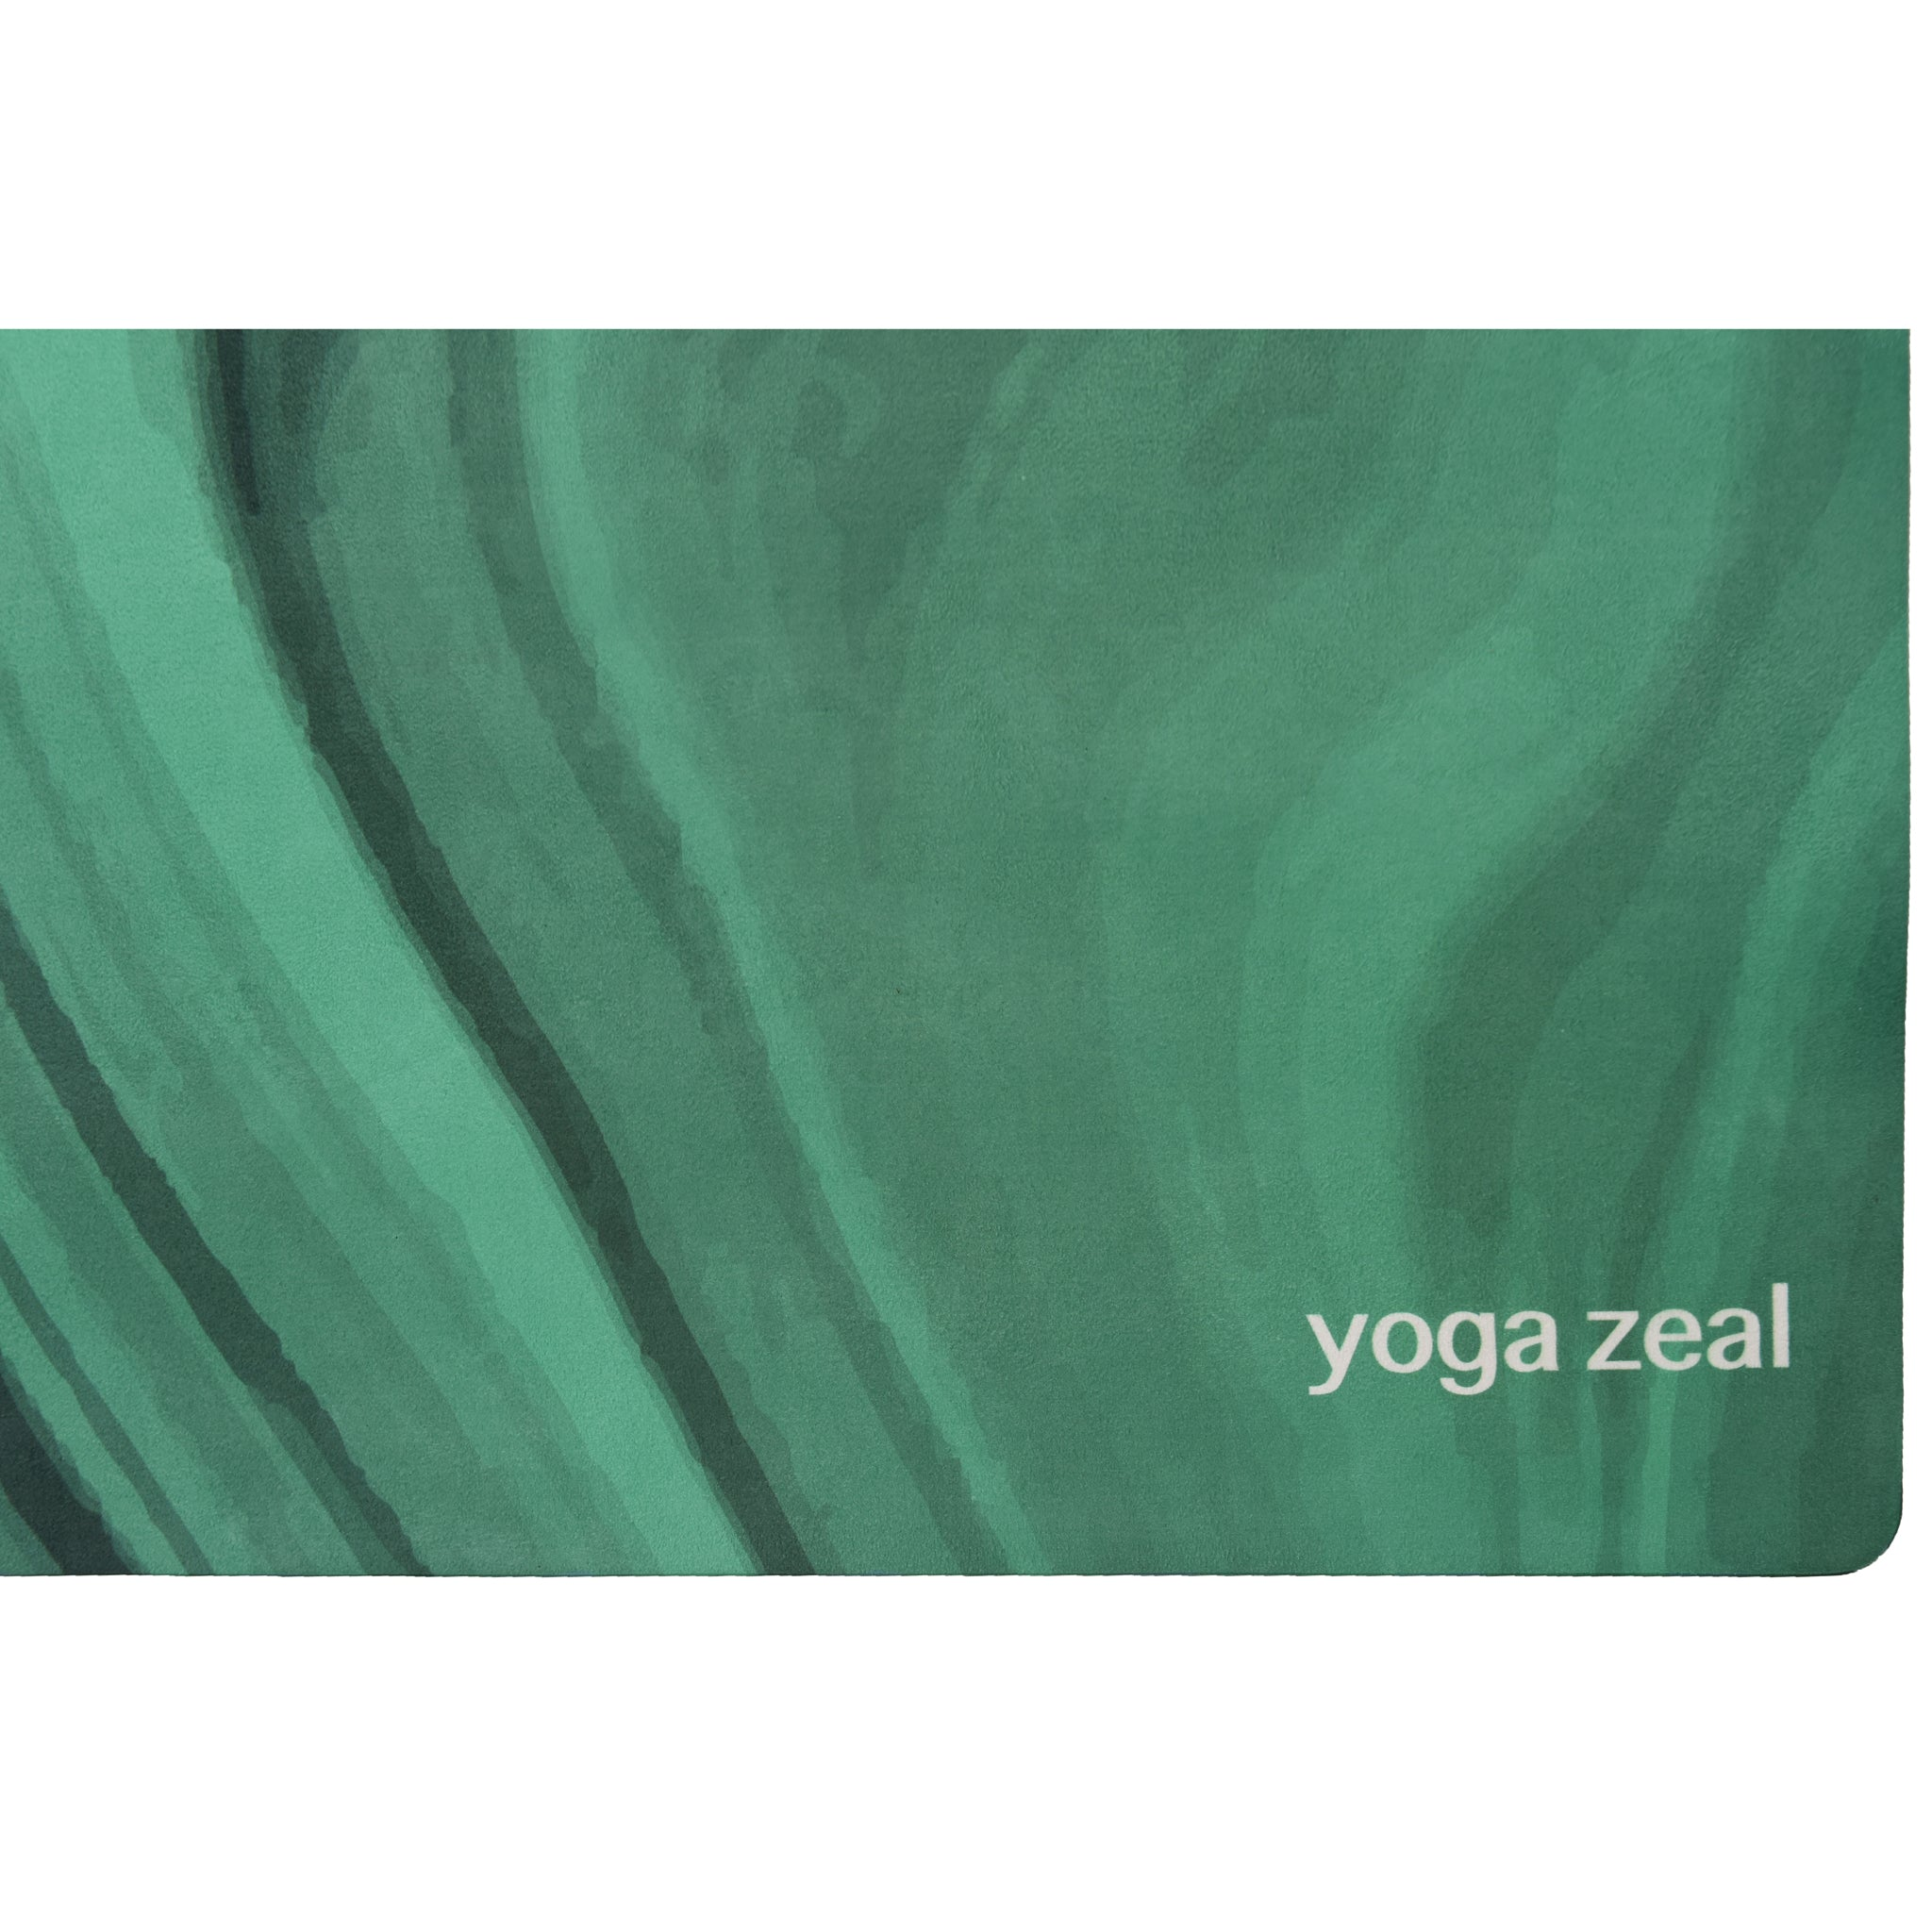 [Best Selling Yoga Mats & Yoga Towels Online] - Yoga Zeal